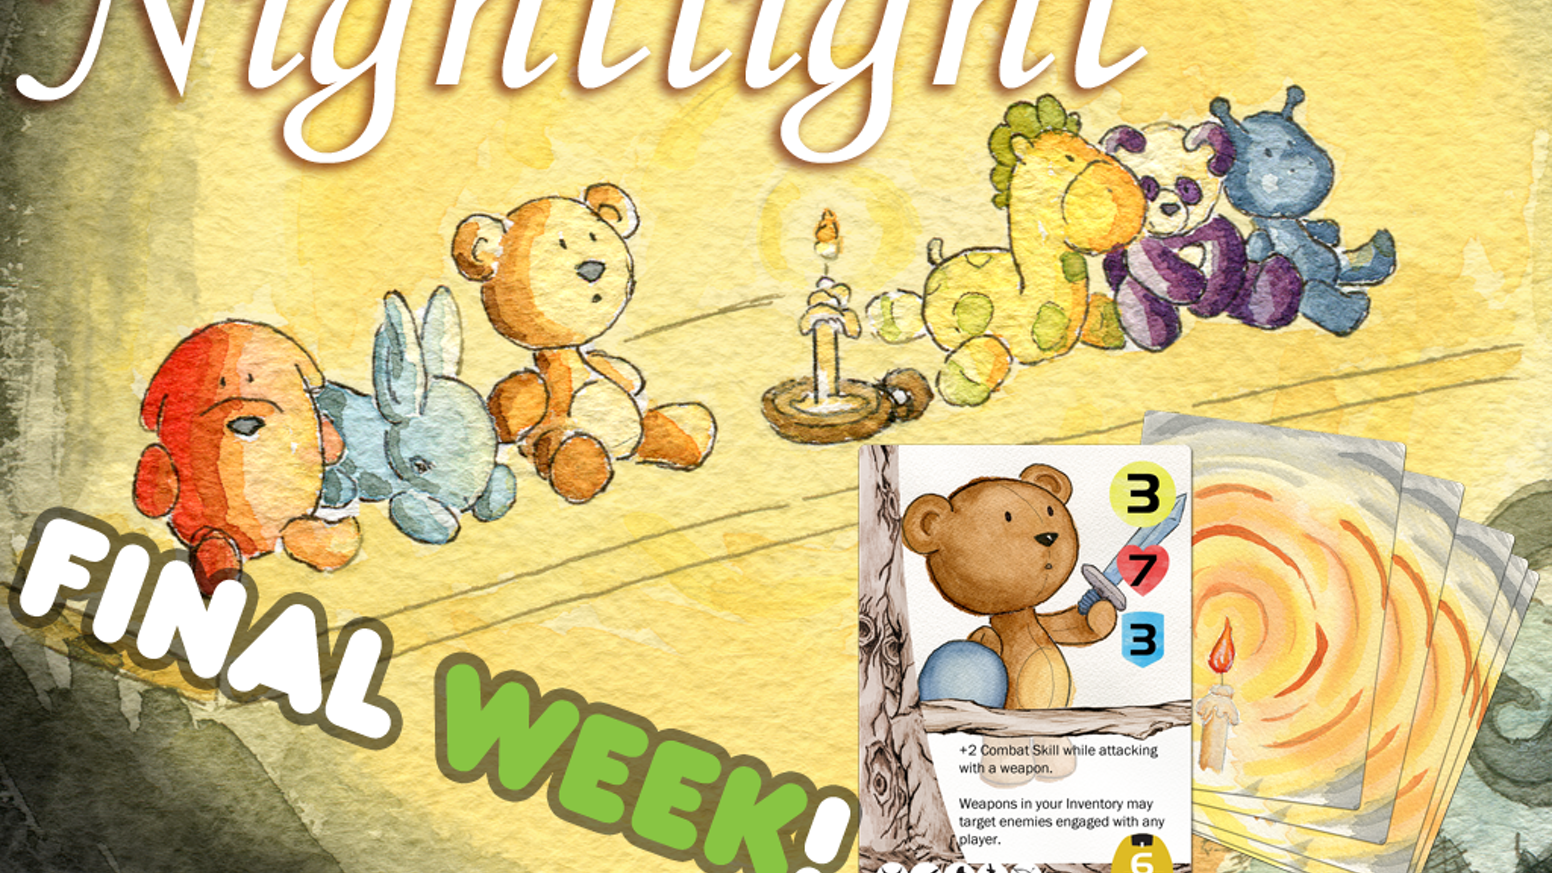 Nightlight is the cooperative card game that resurrects your childhood nightmares and forces you to face them as a stuffed animal!